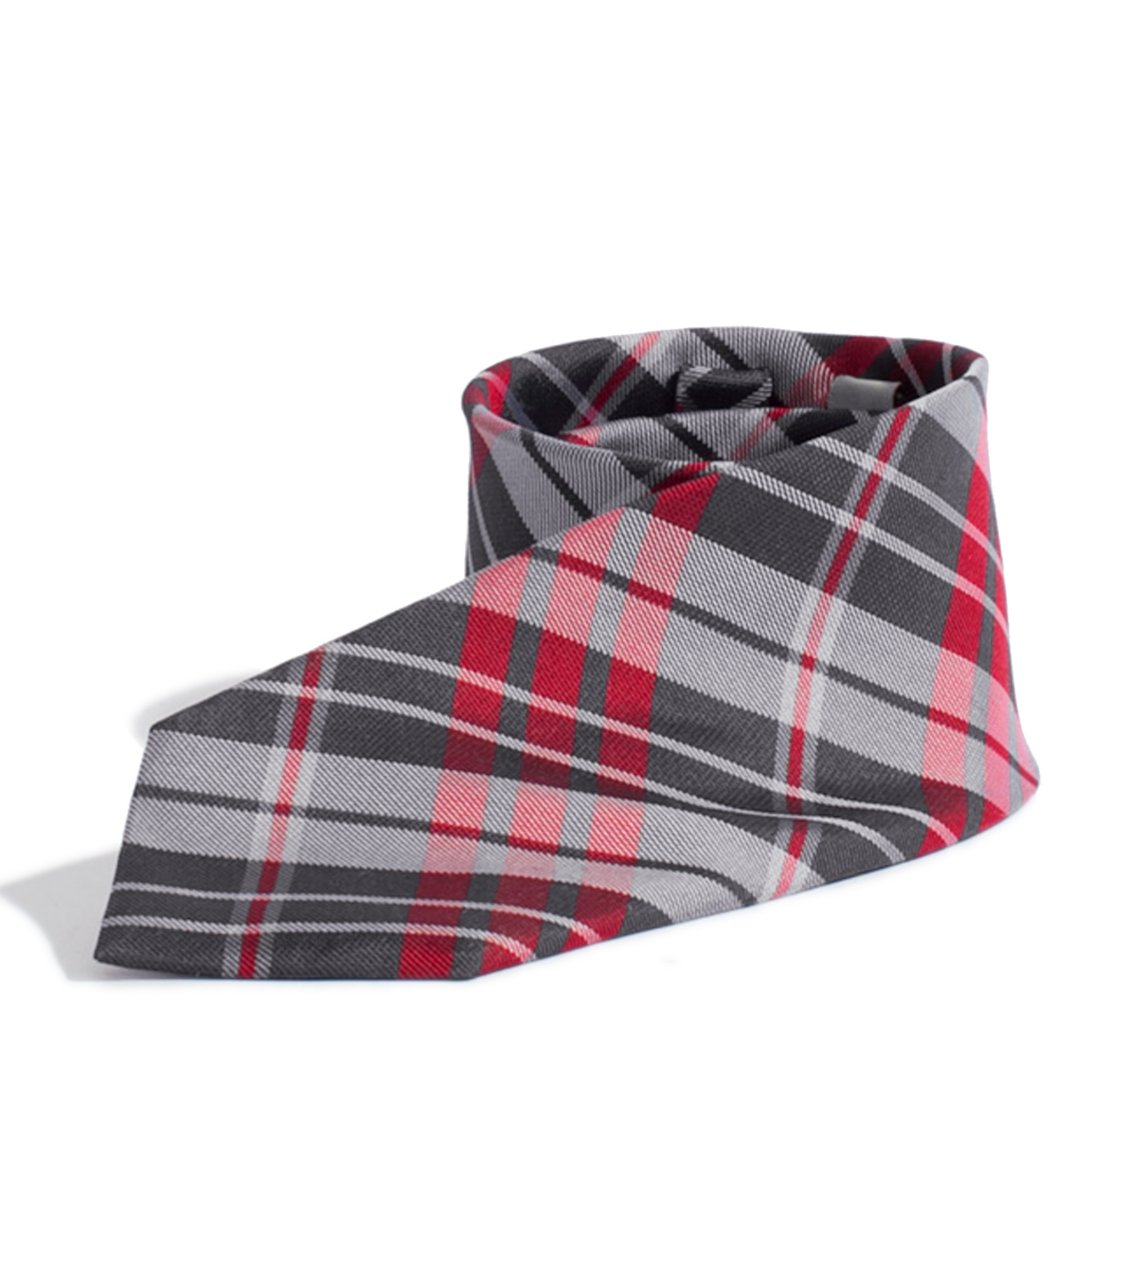 G by GUESS Red Plaid Tie, RED